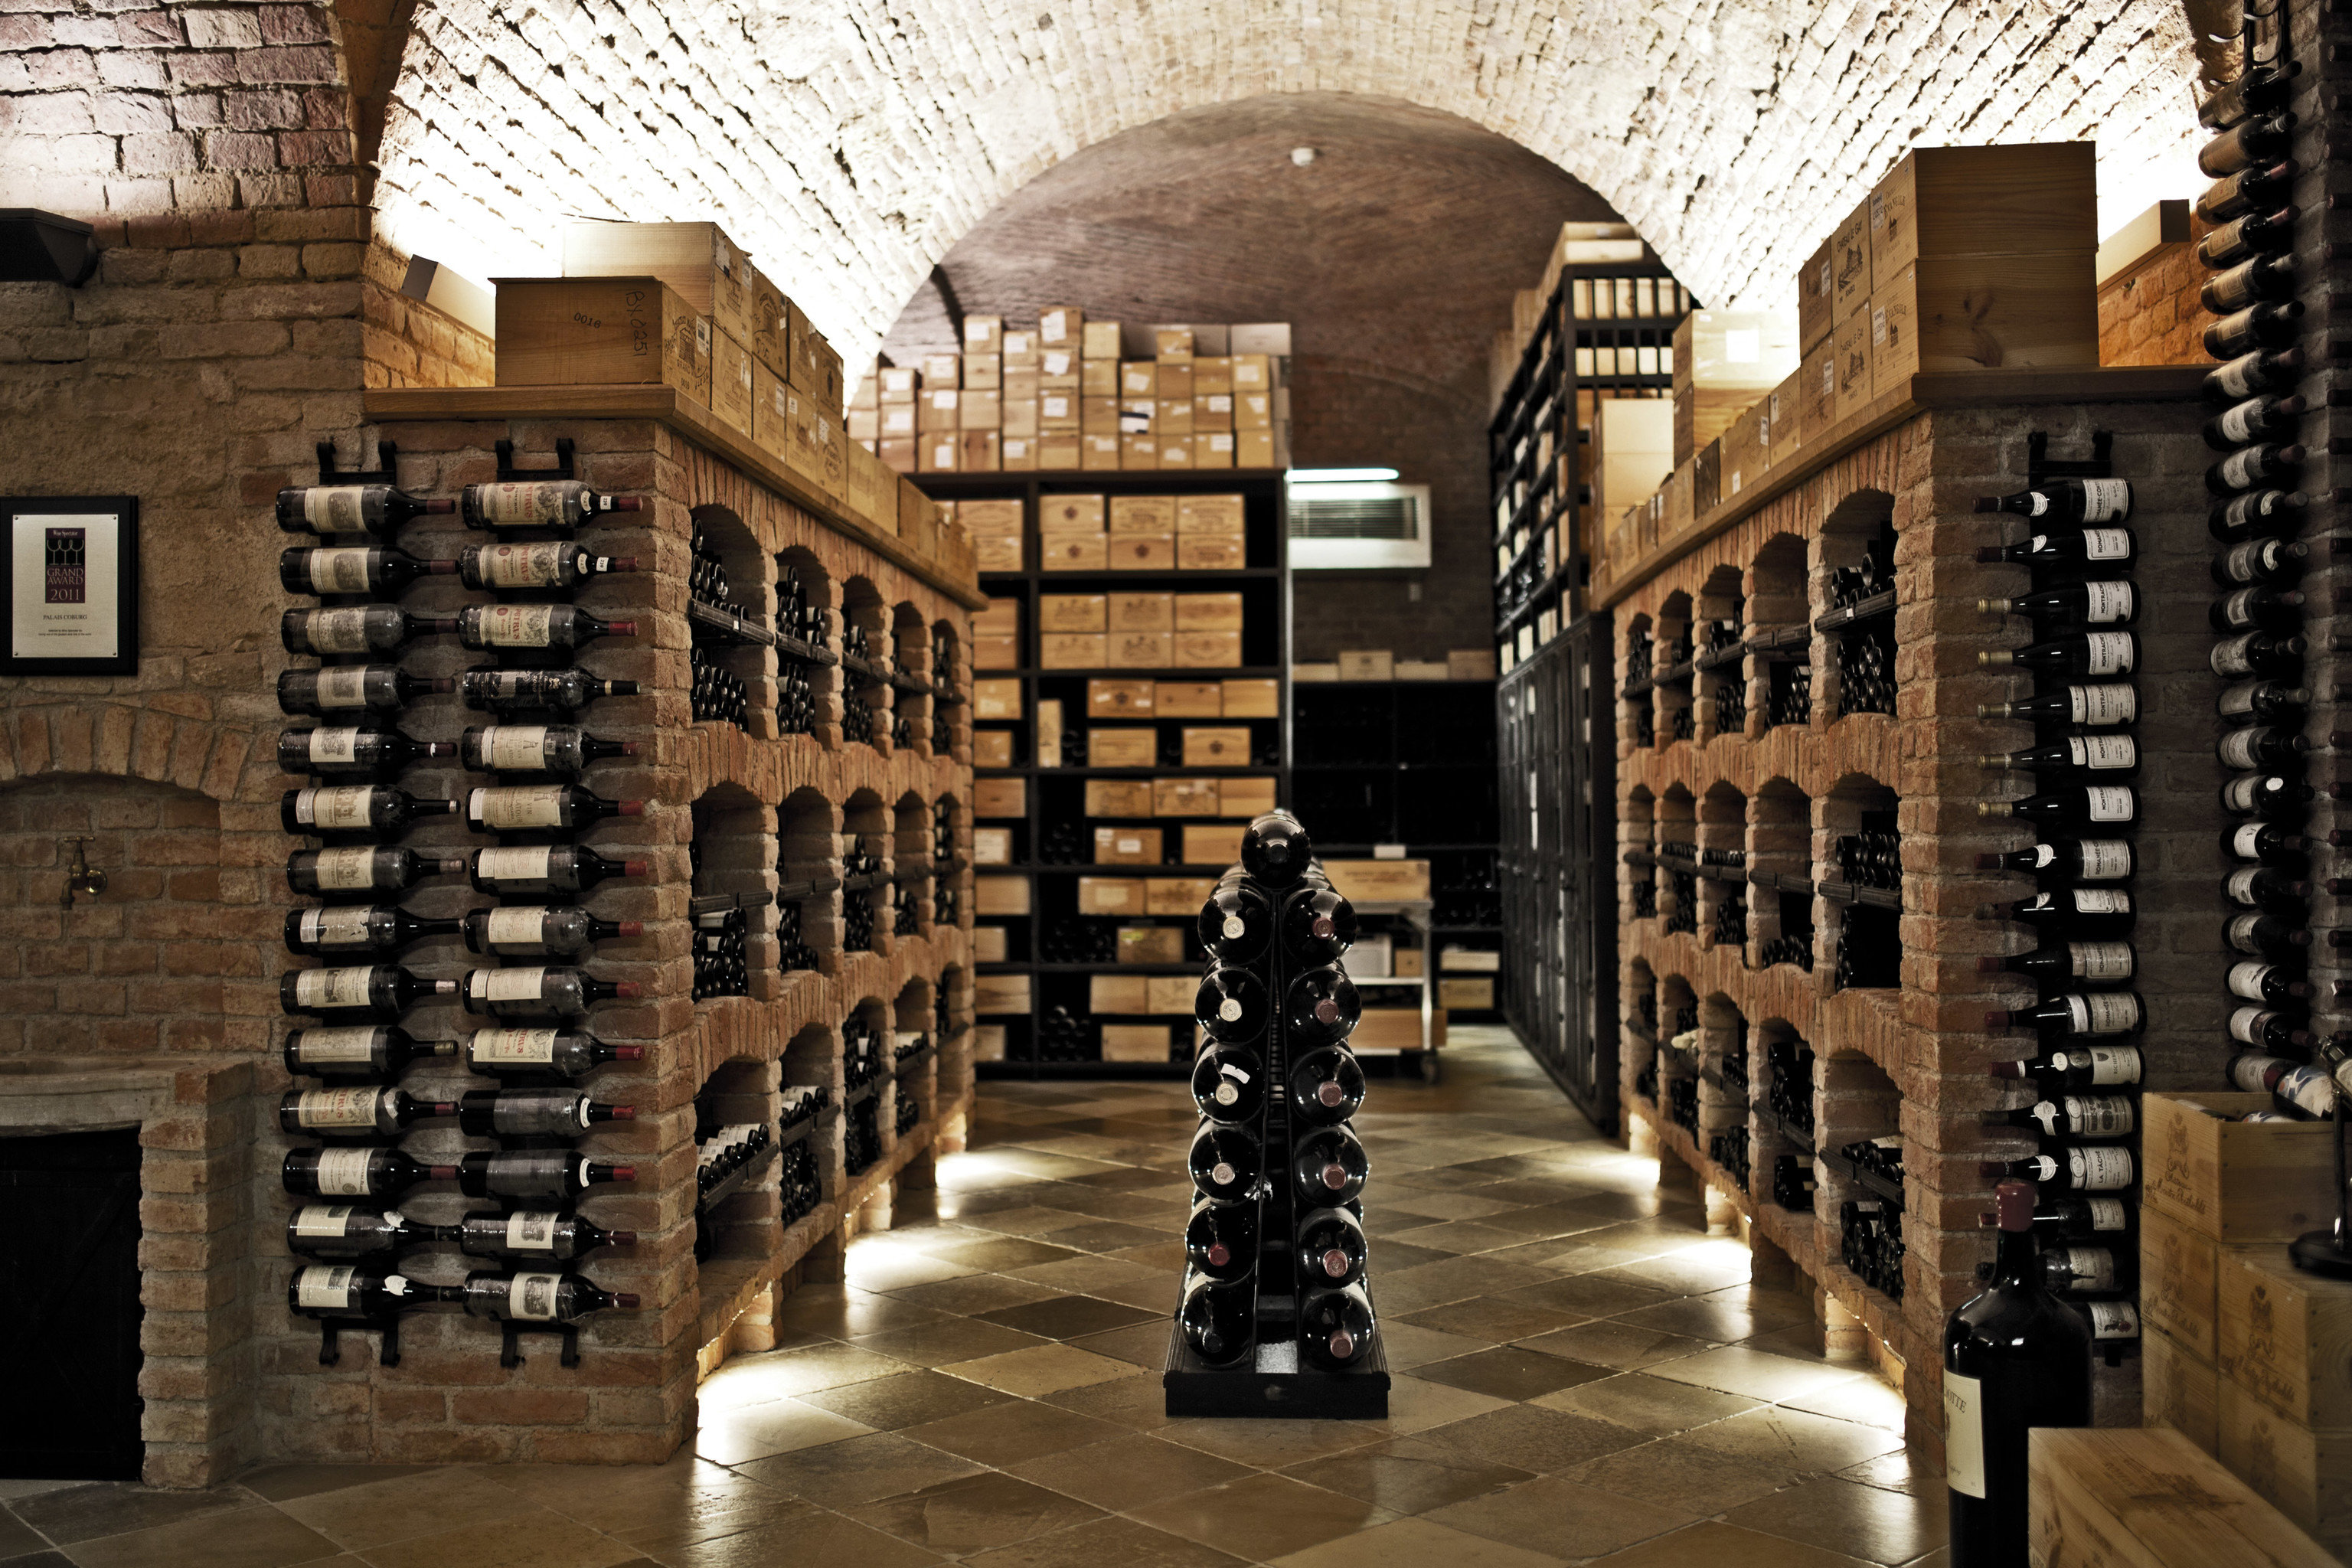 basement building Architecture Winery library aisle ancient history